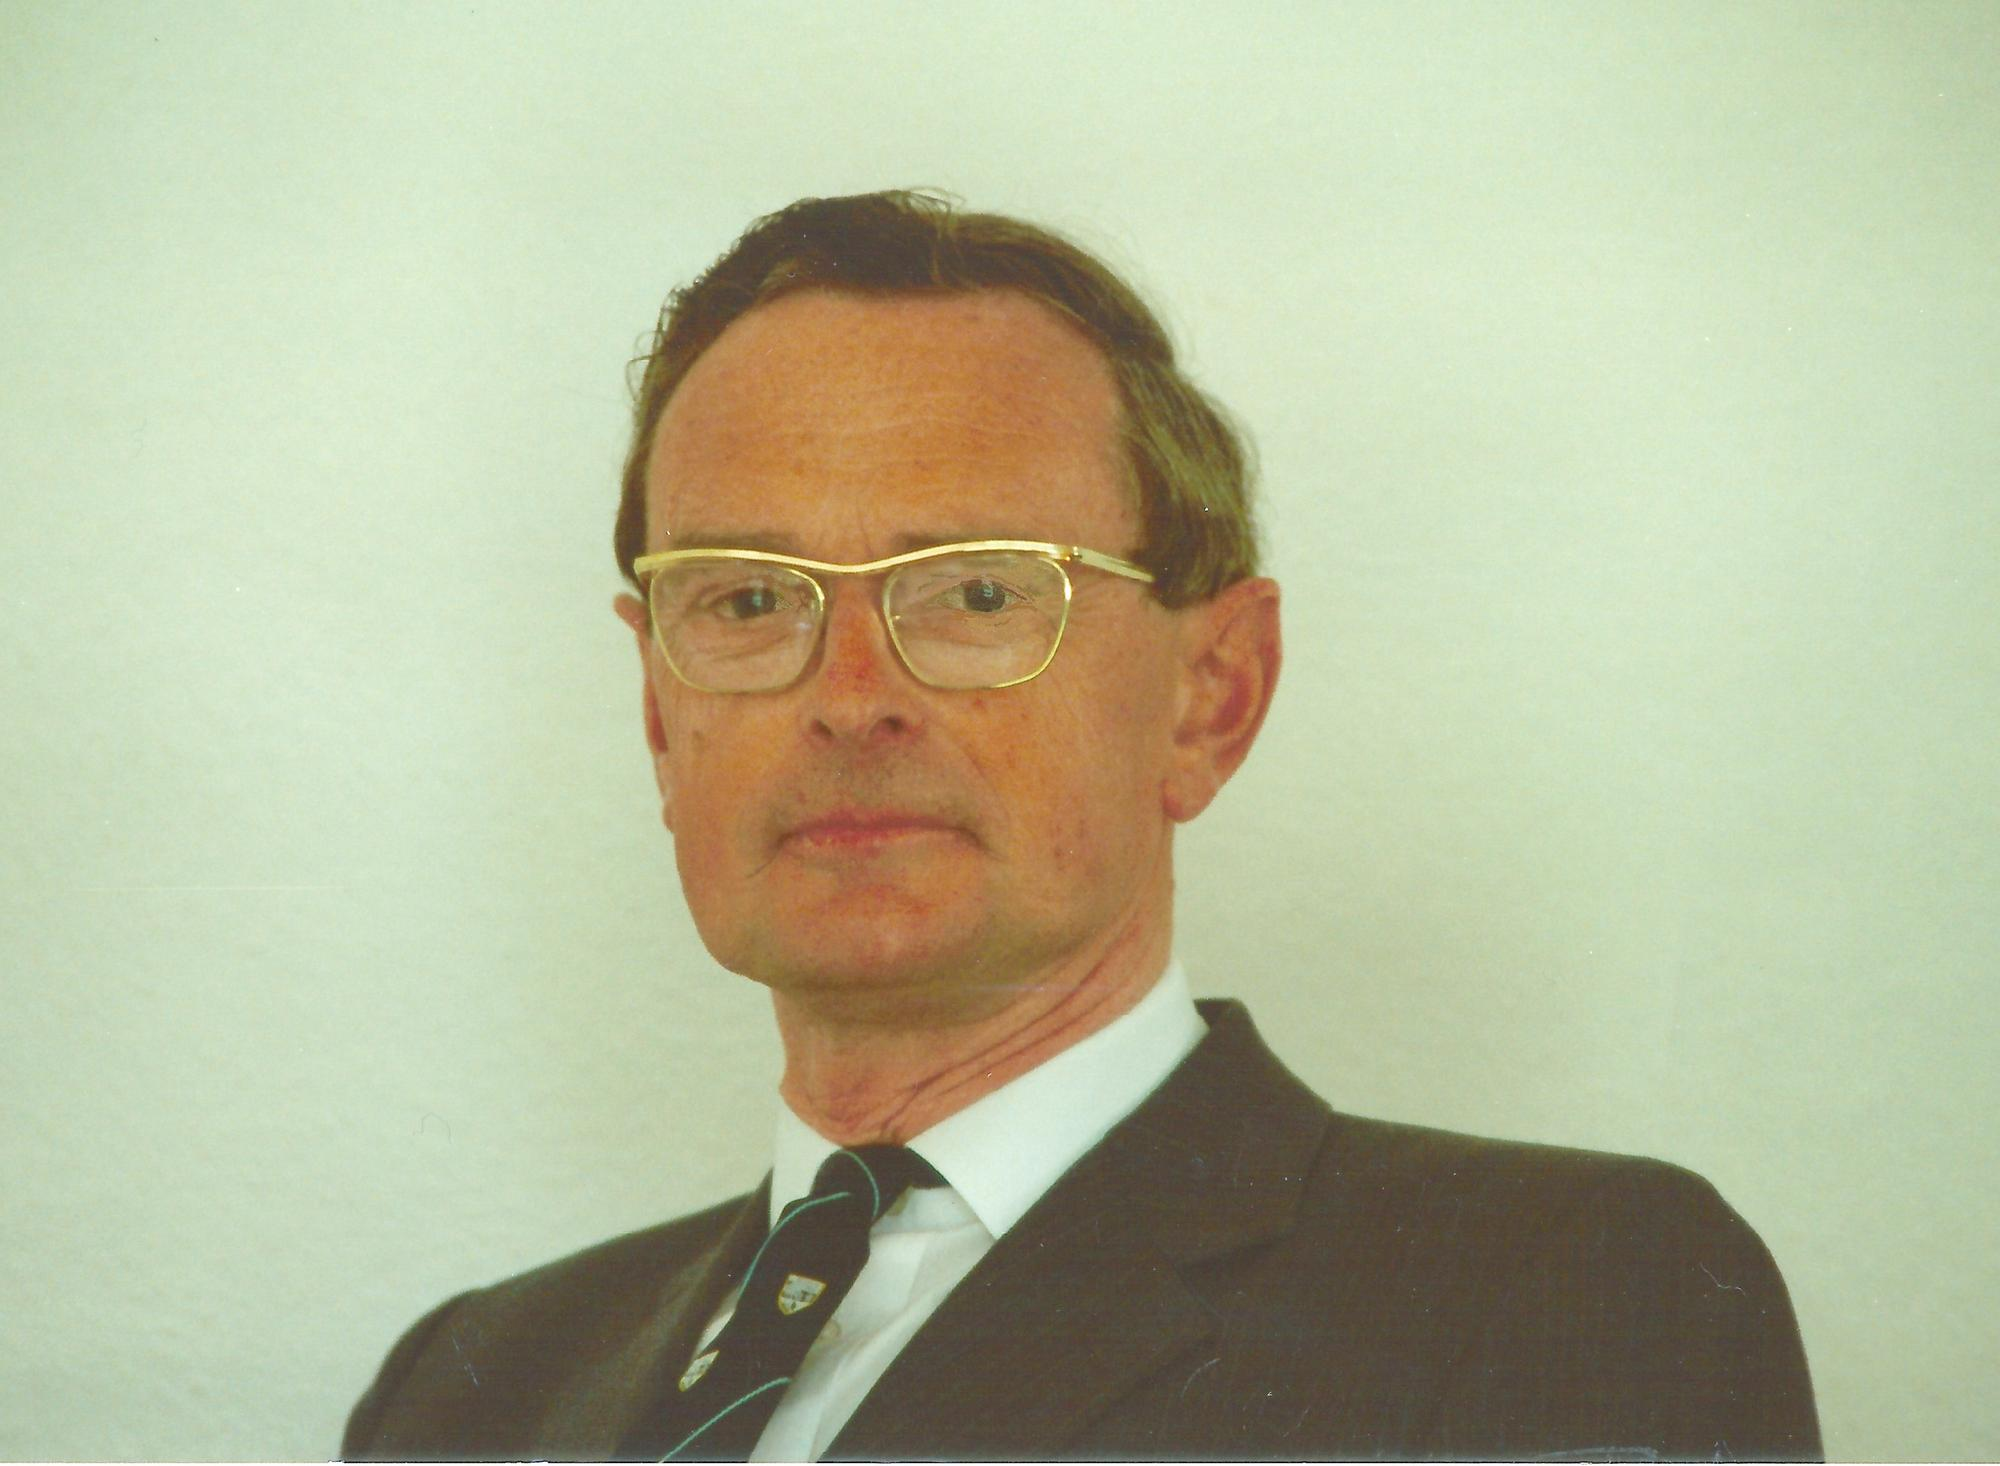 Obituary: Colin Davidson, professor of electrical engineering